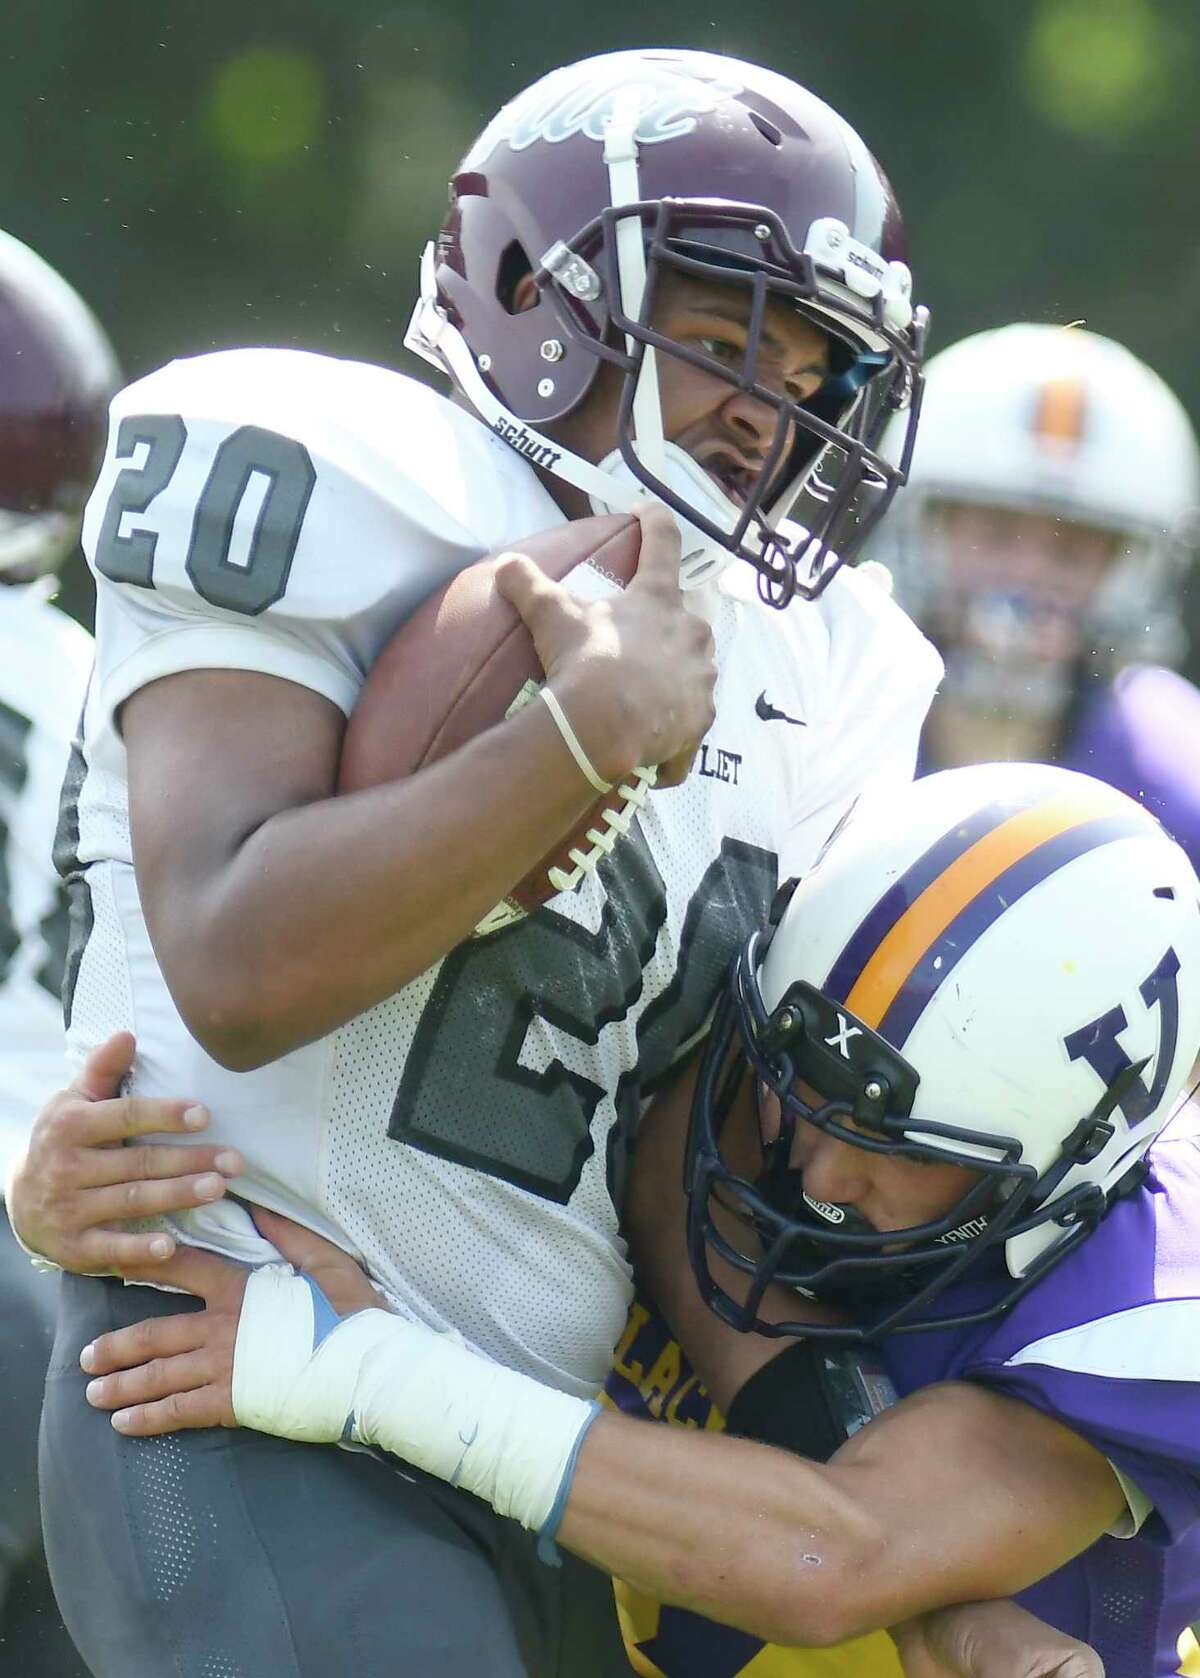 Watervliet's Kareem Duncan (20) runs the ball against Voorheesville during a Section II Class C high school football game in Voorheesville, N.Y., Saturday, Sept. 16, 2017. (Hans Pennink / Special to the Times Union) ORG XMIT: HP115